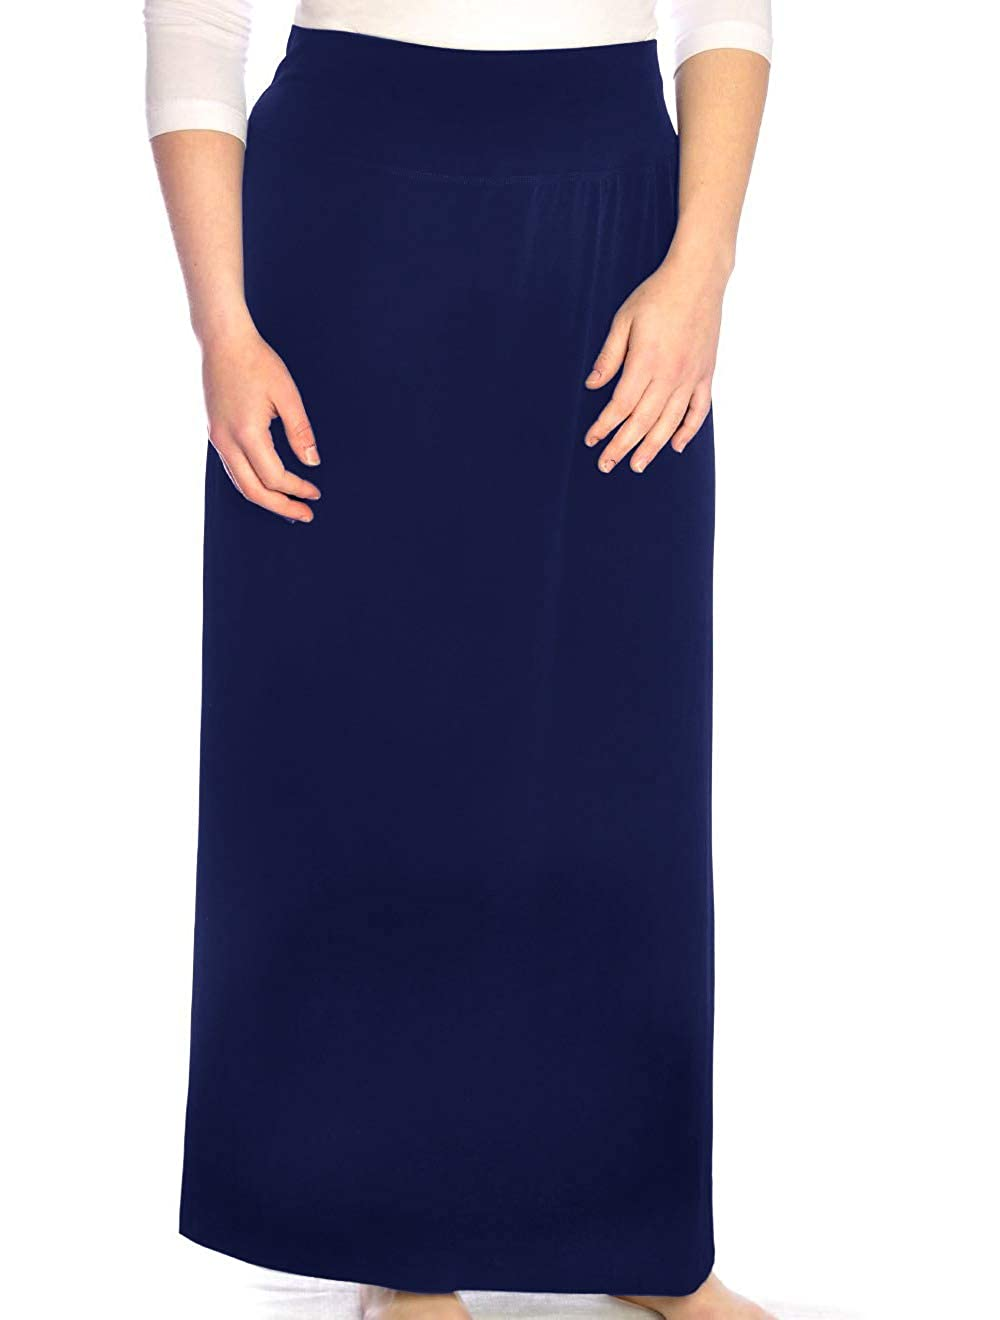 3ad83855ae Classic straight maxi skirt. Silky fabric looks great for dressing up and  works well for travel. Smooth elastic waistband, versatile slinky fabric.